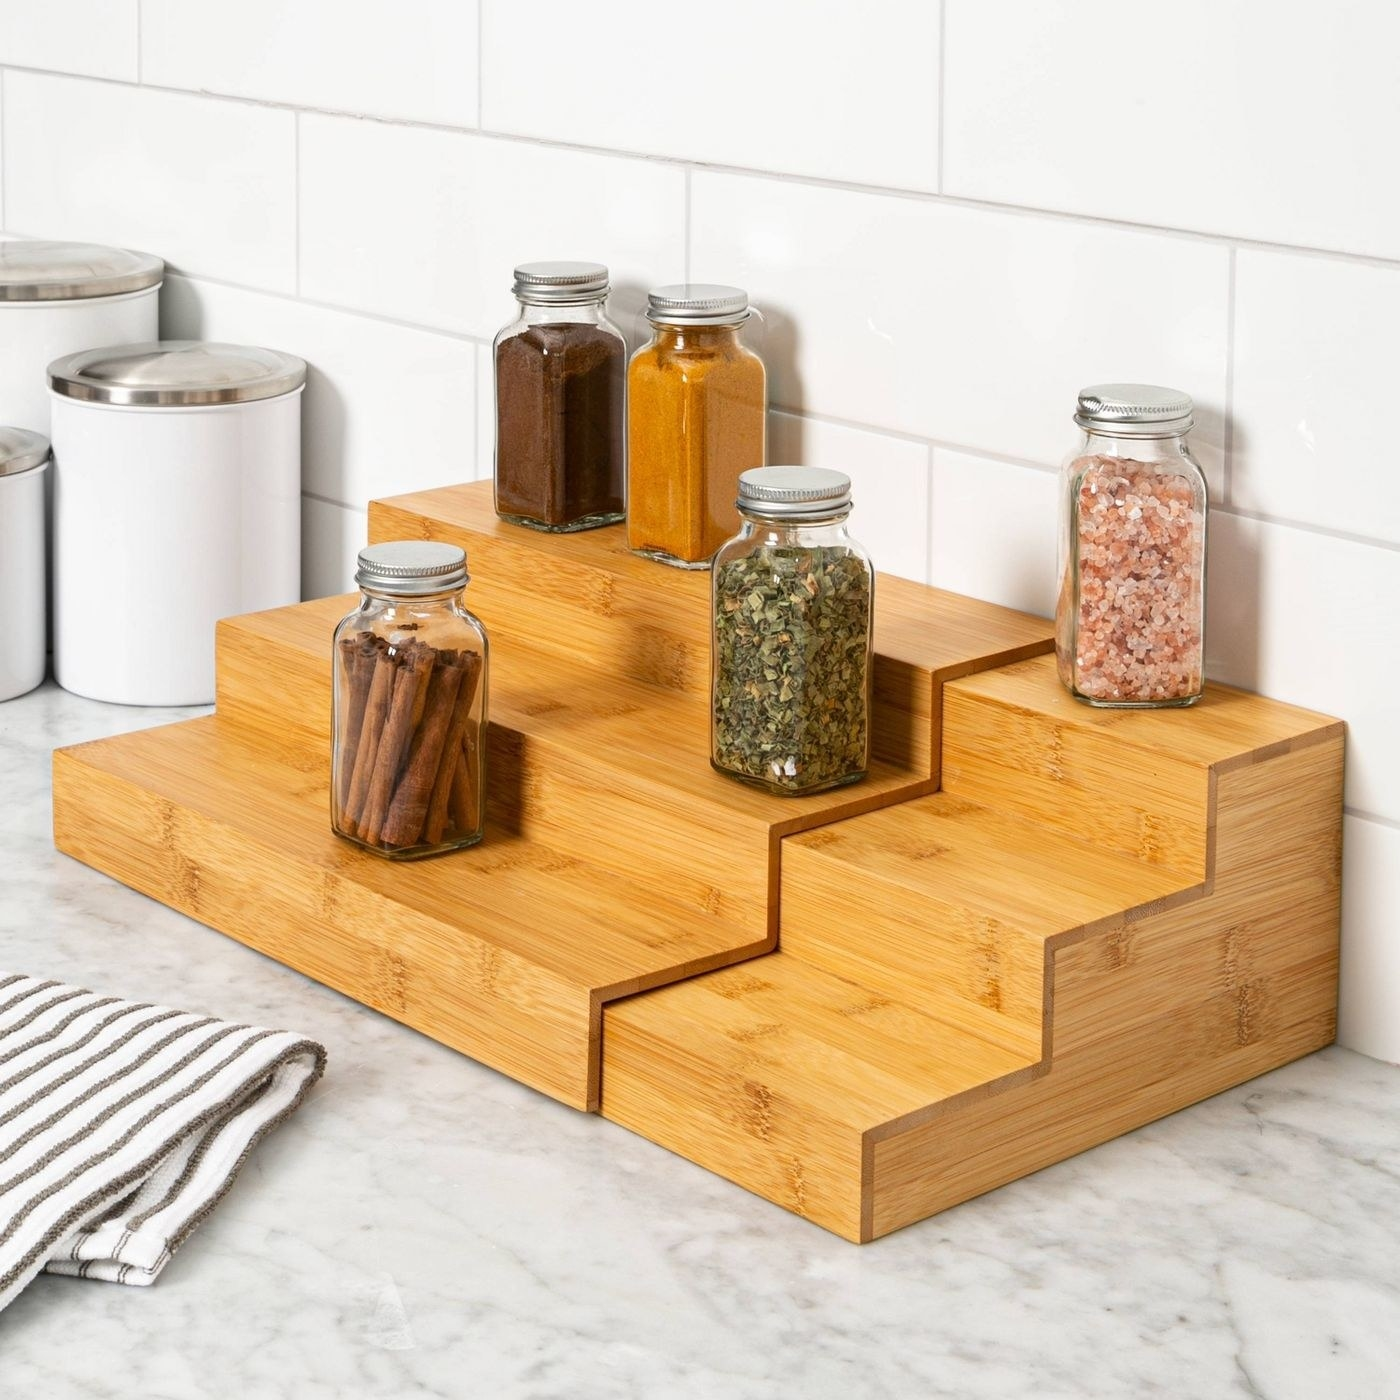 The spice rack, which is solid and has three tiers of bamboo shelving, which can be expanded and made longer